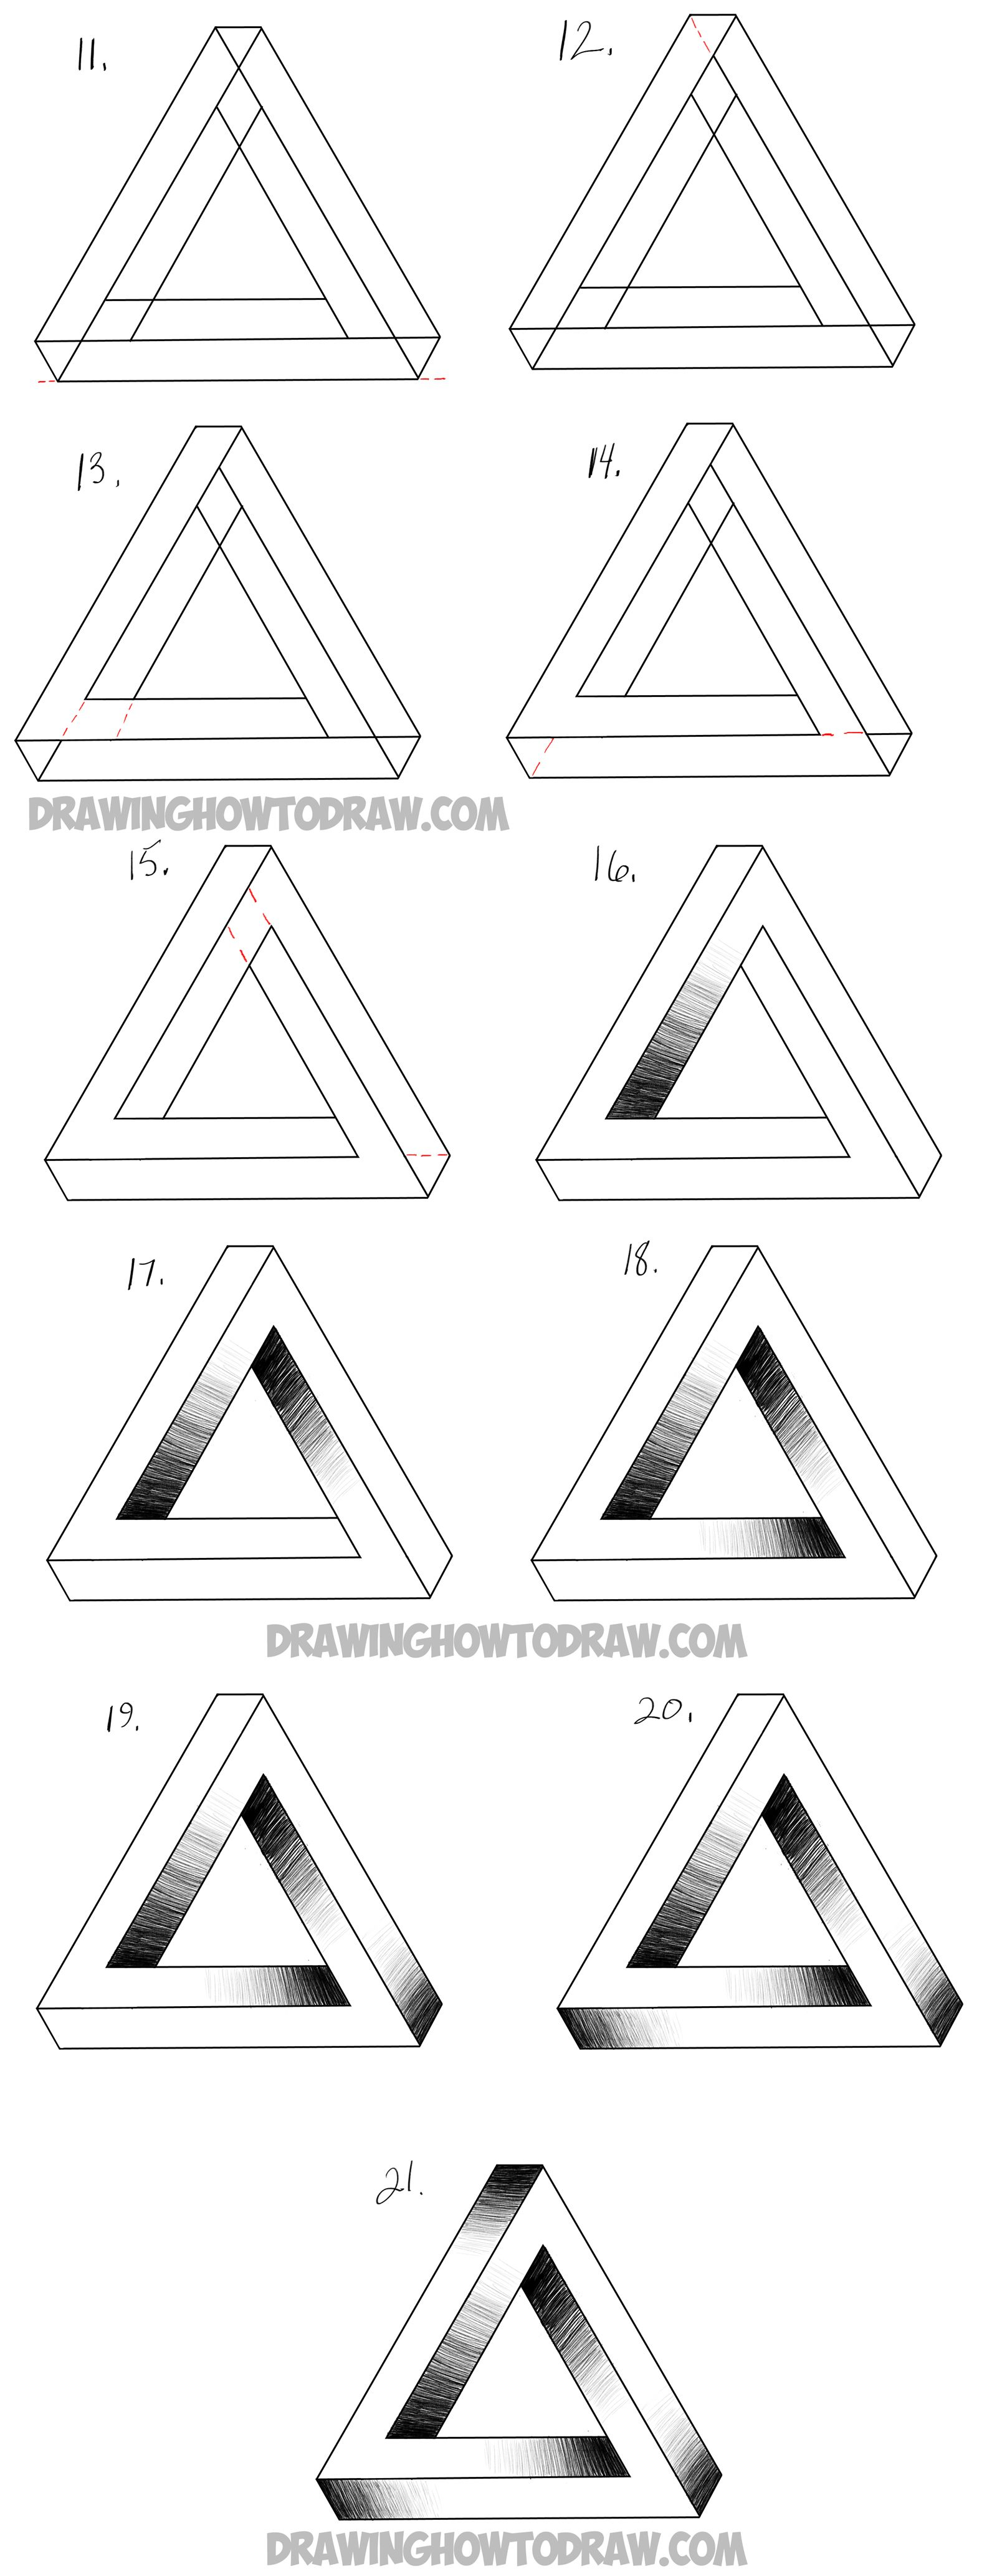 How to Draw an Impossible Triangle - Easy Step by Step ...